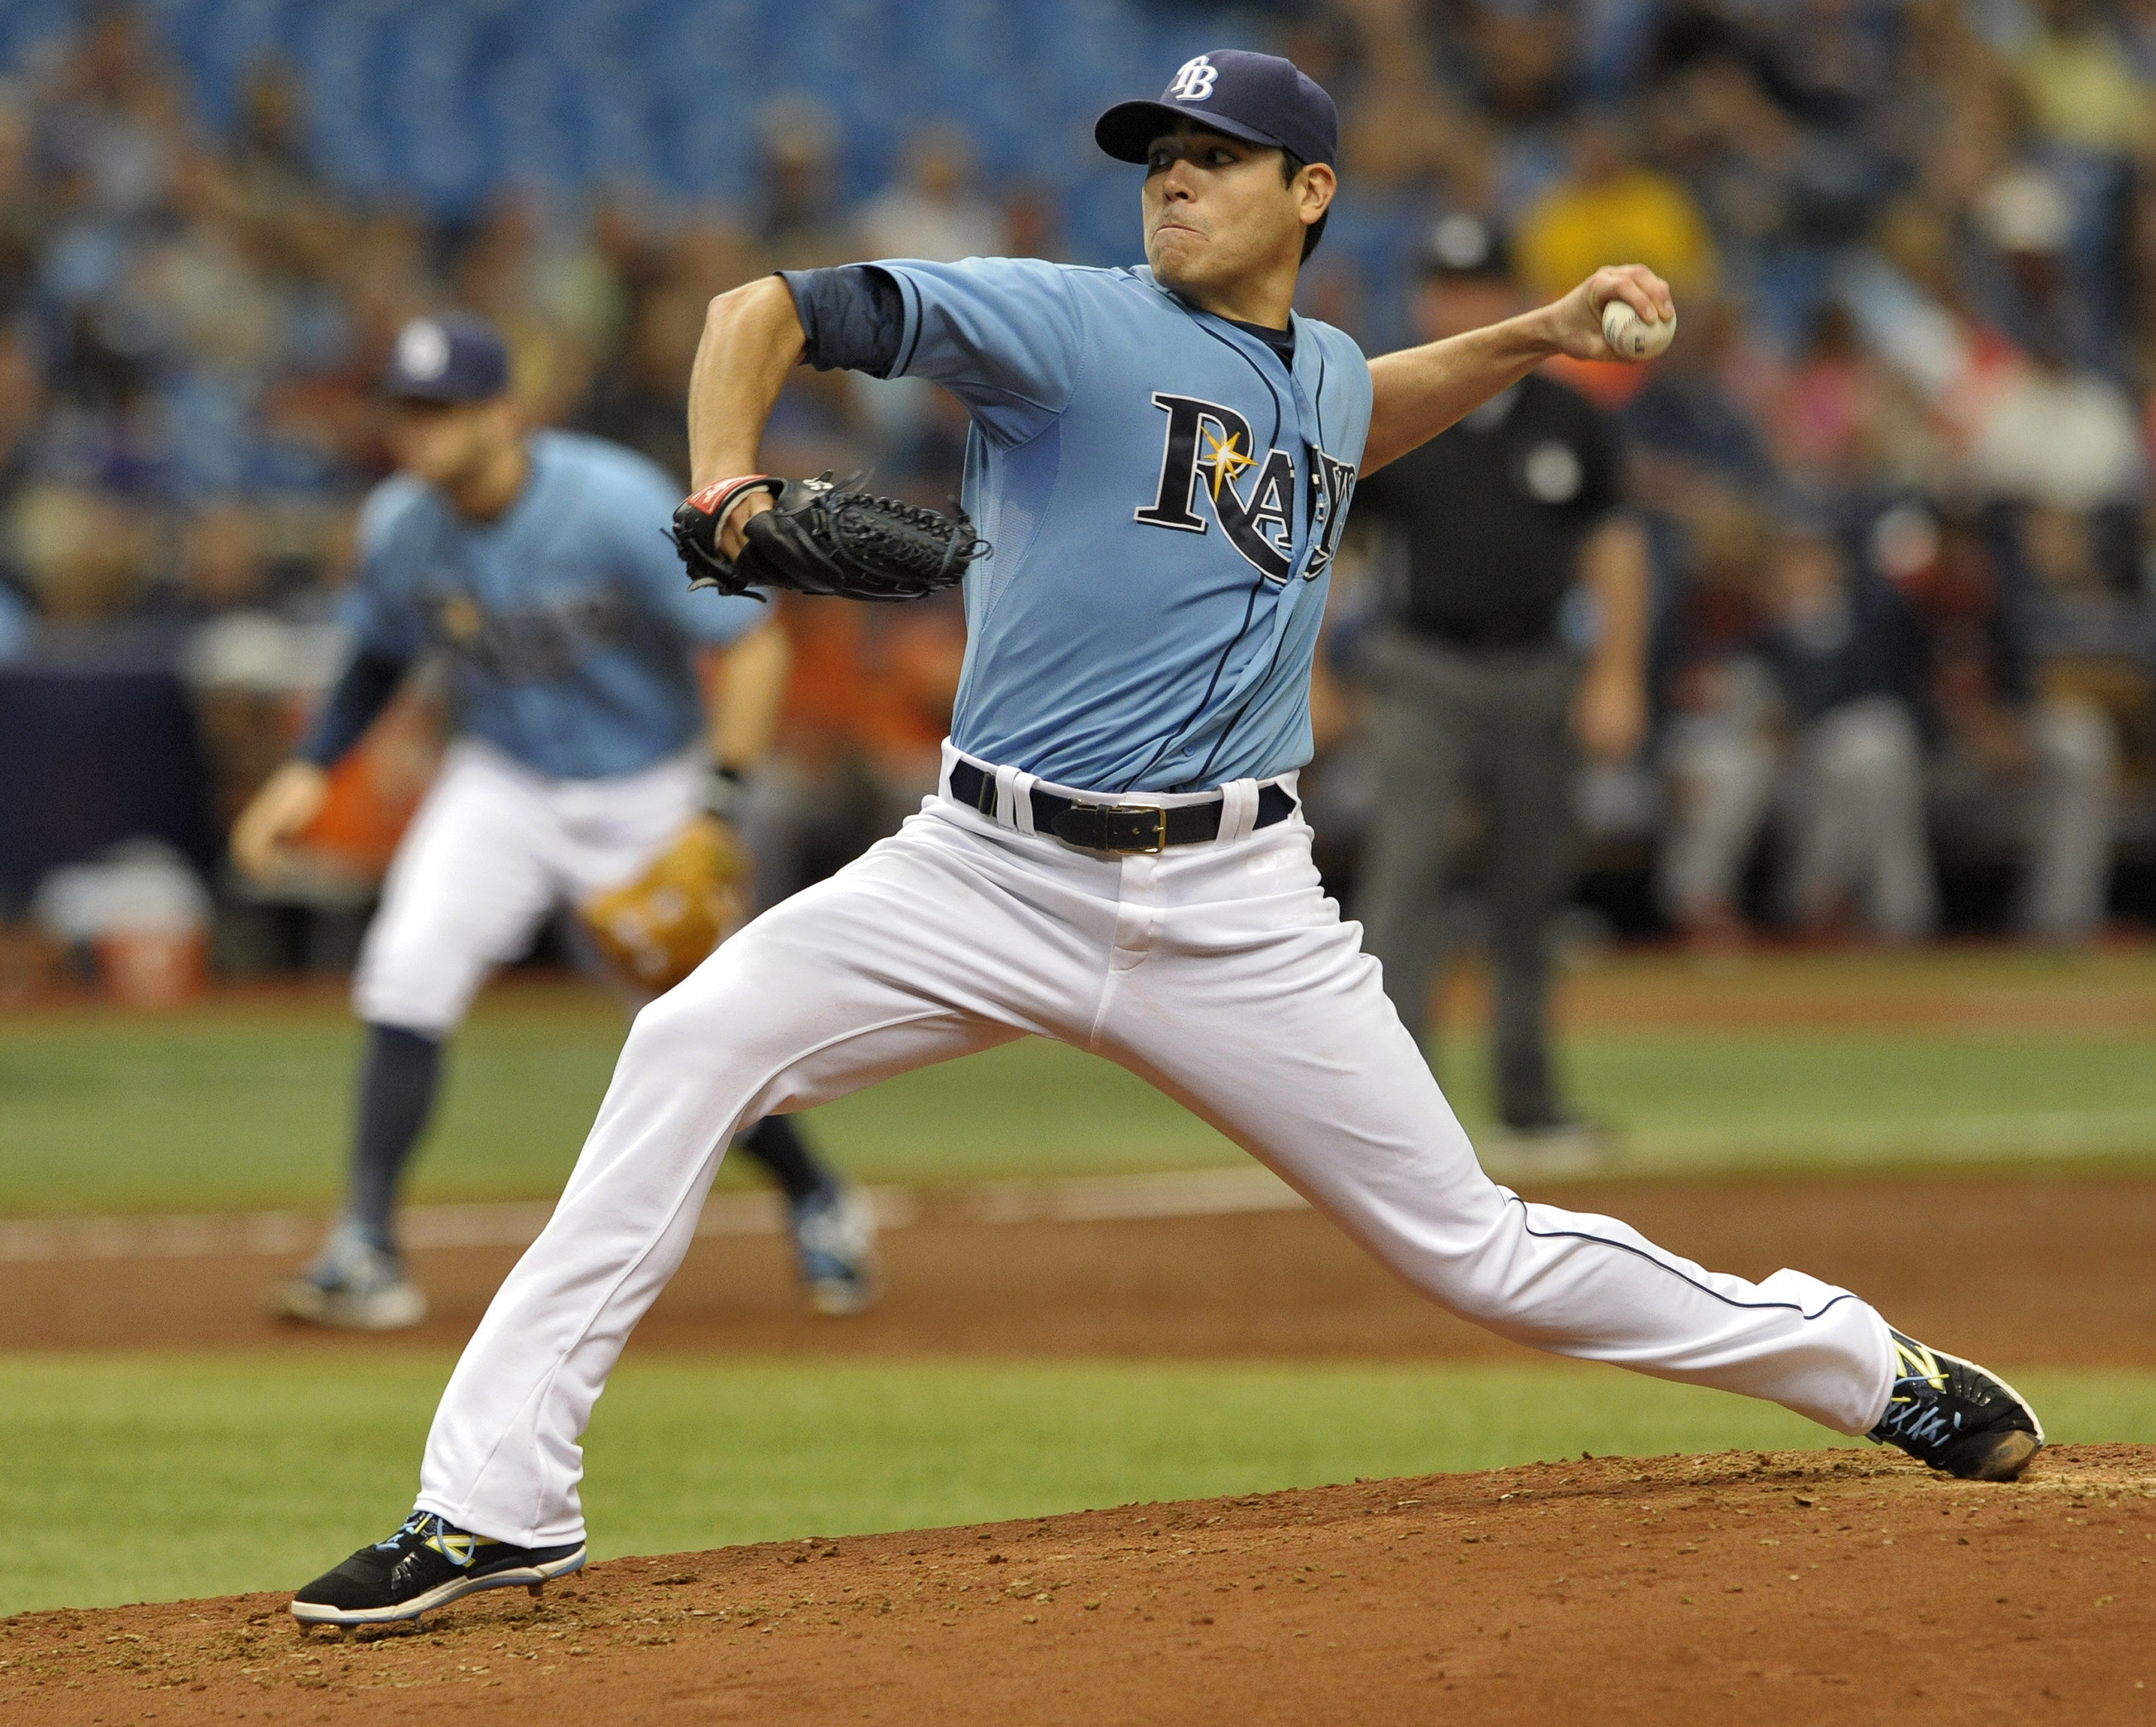 Tampa Bay Rays starter Matt Moore pitches against the Houston Astros during the third inning of a baseball game, Sunday, July 12, 2015, in St. Petersburg, Fla. (AP Photo/Steve Nesius)